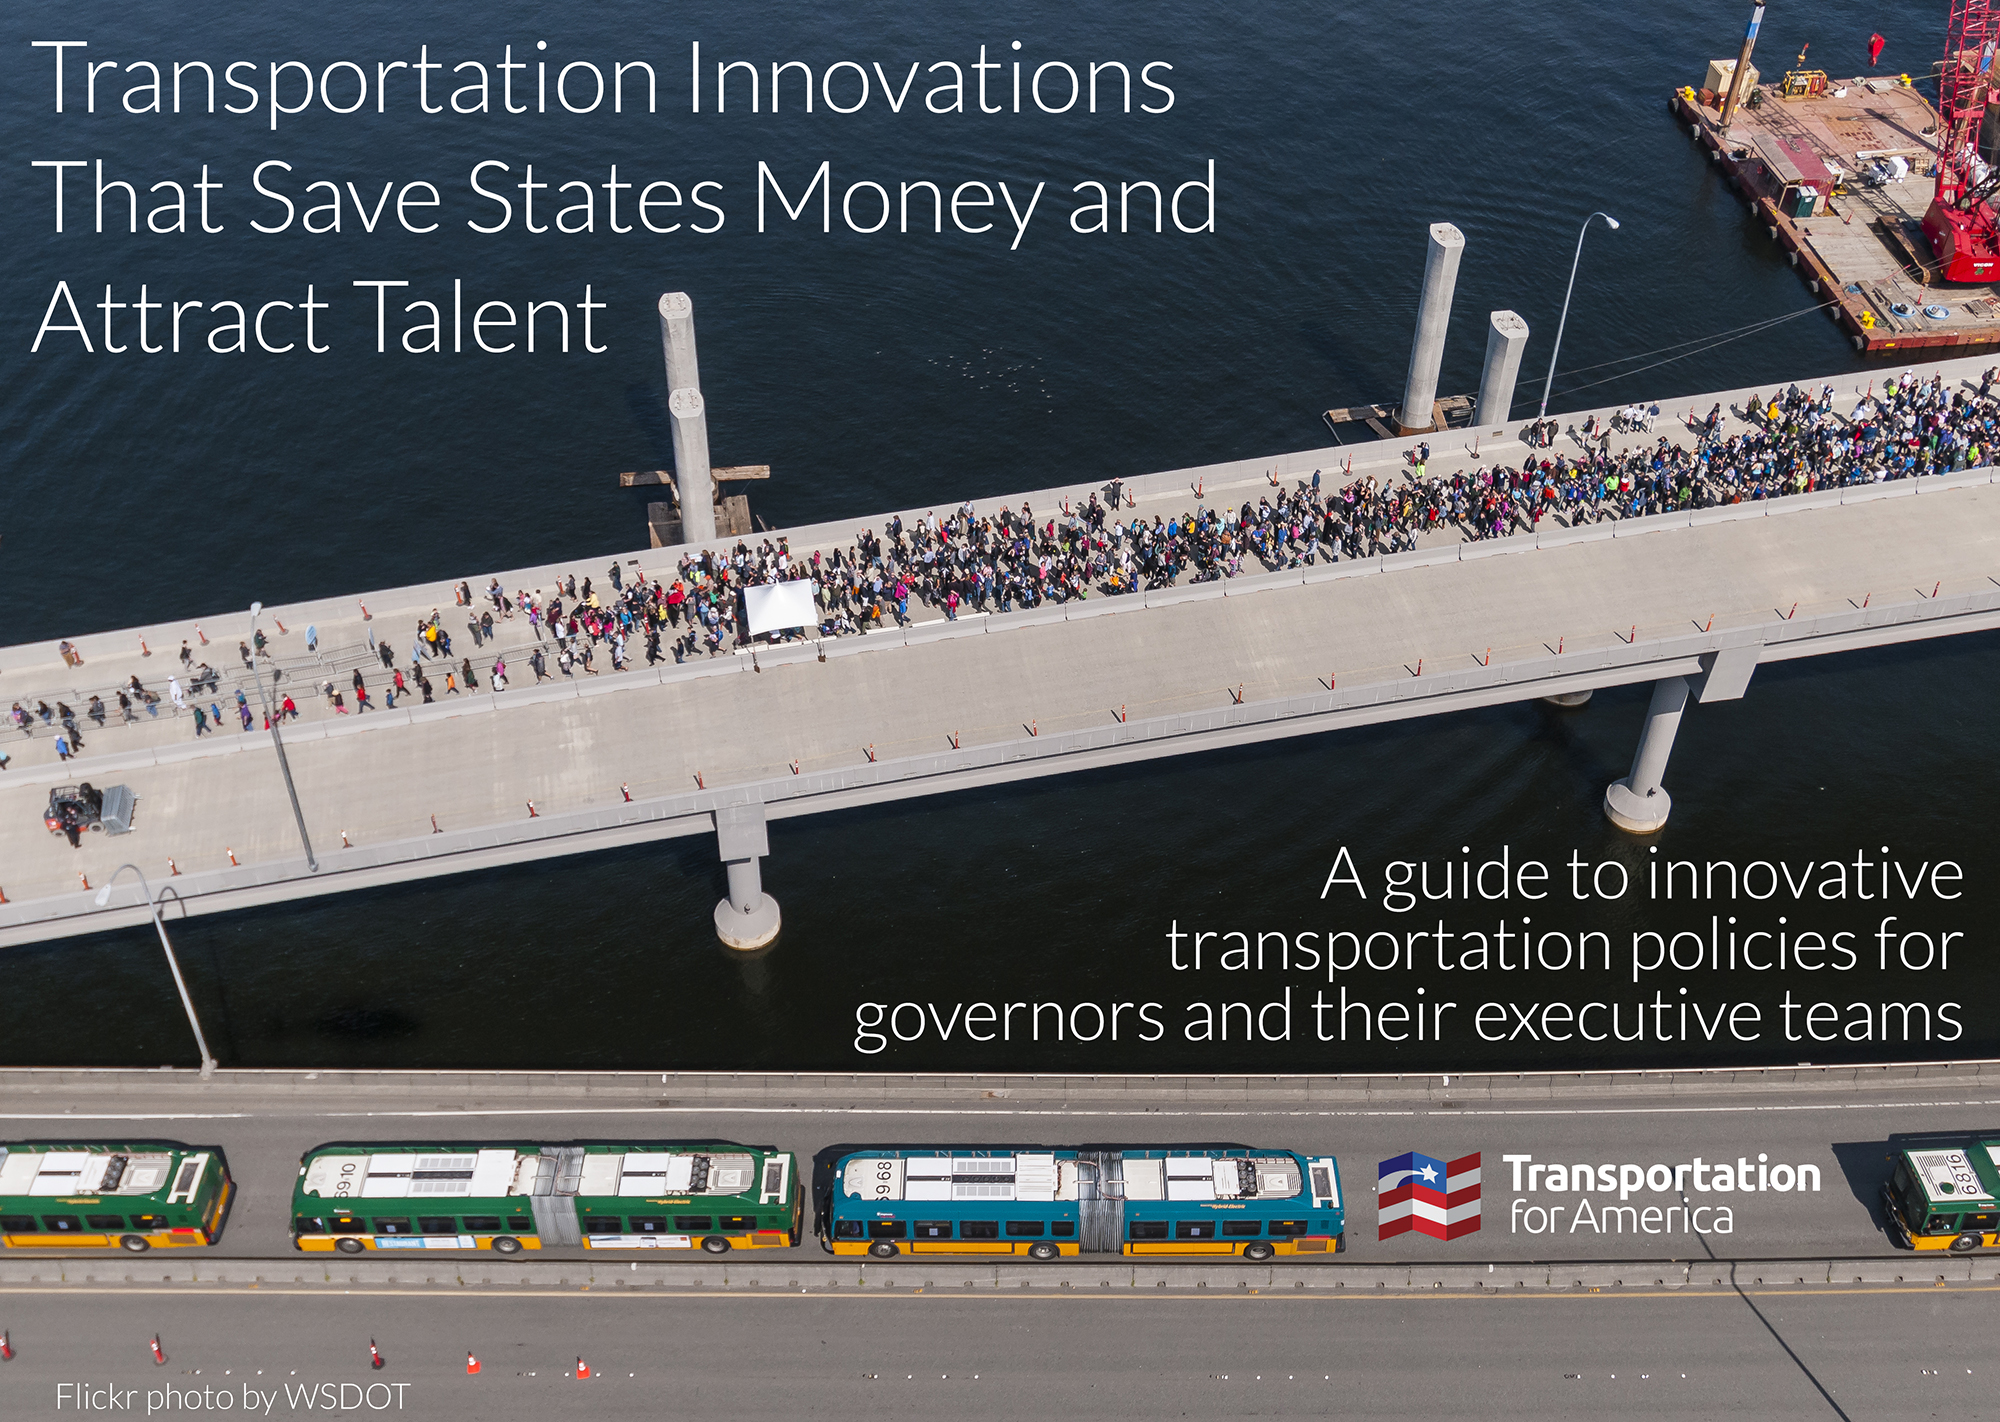 Transportation briefing book for governors